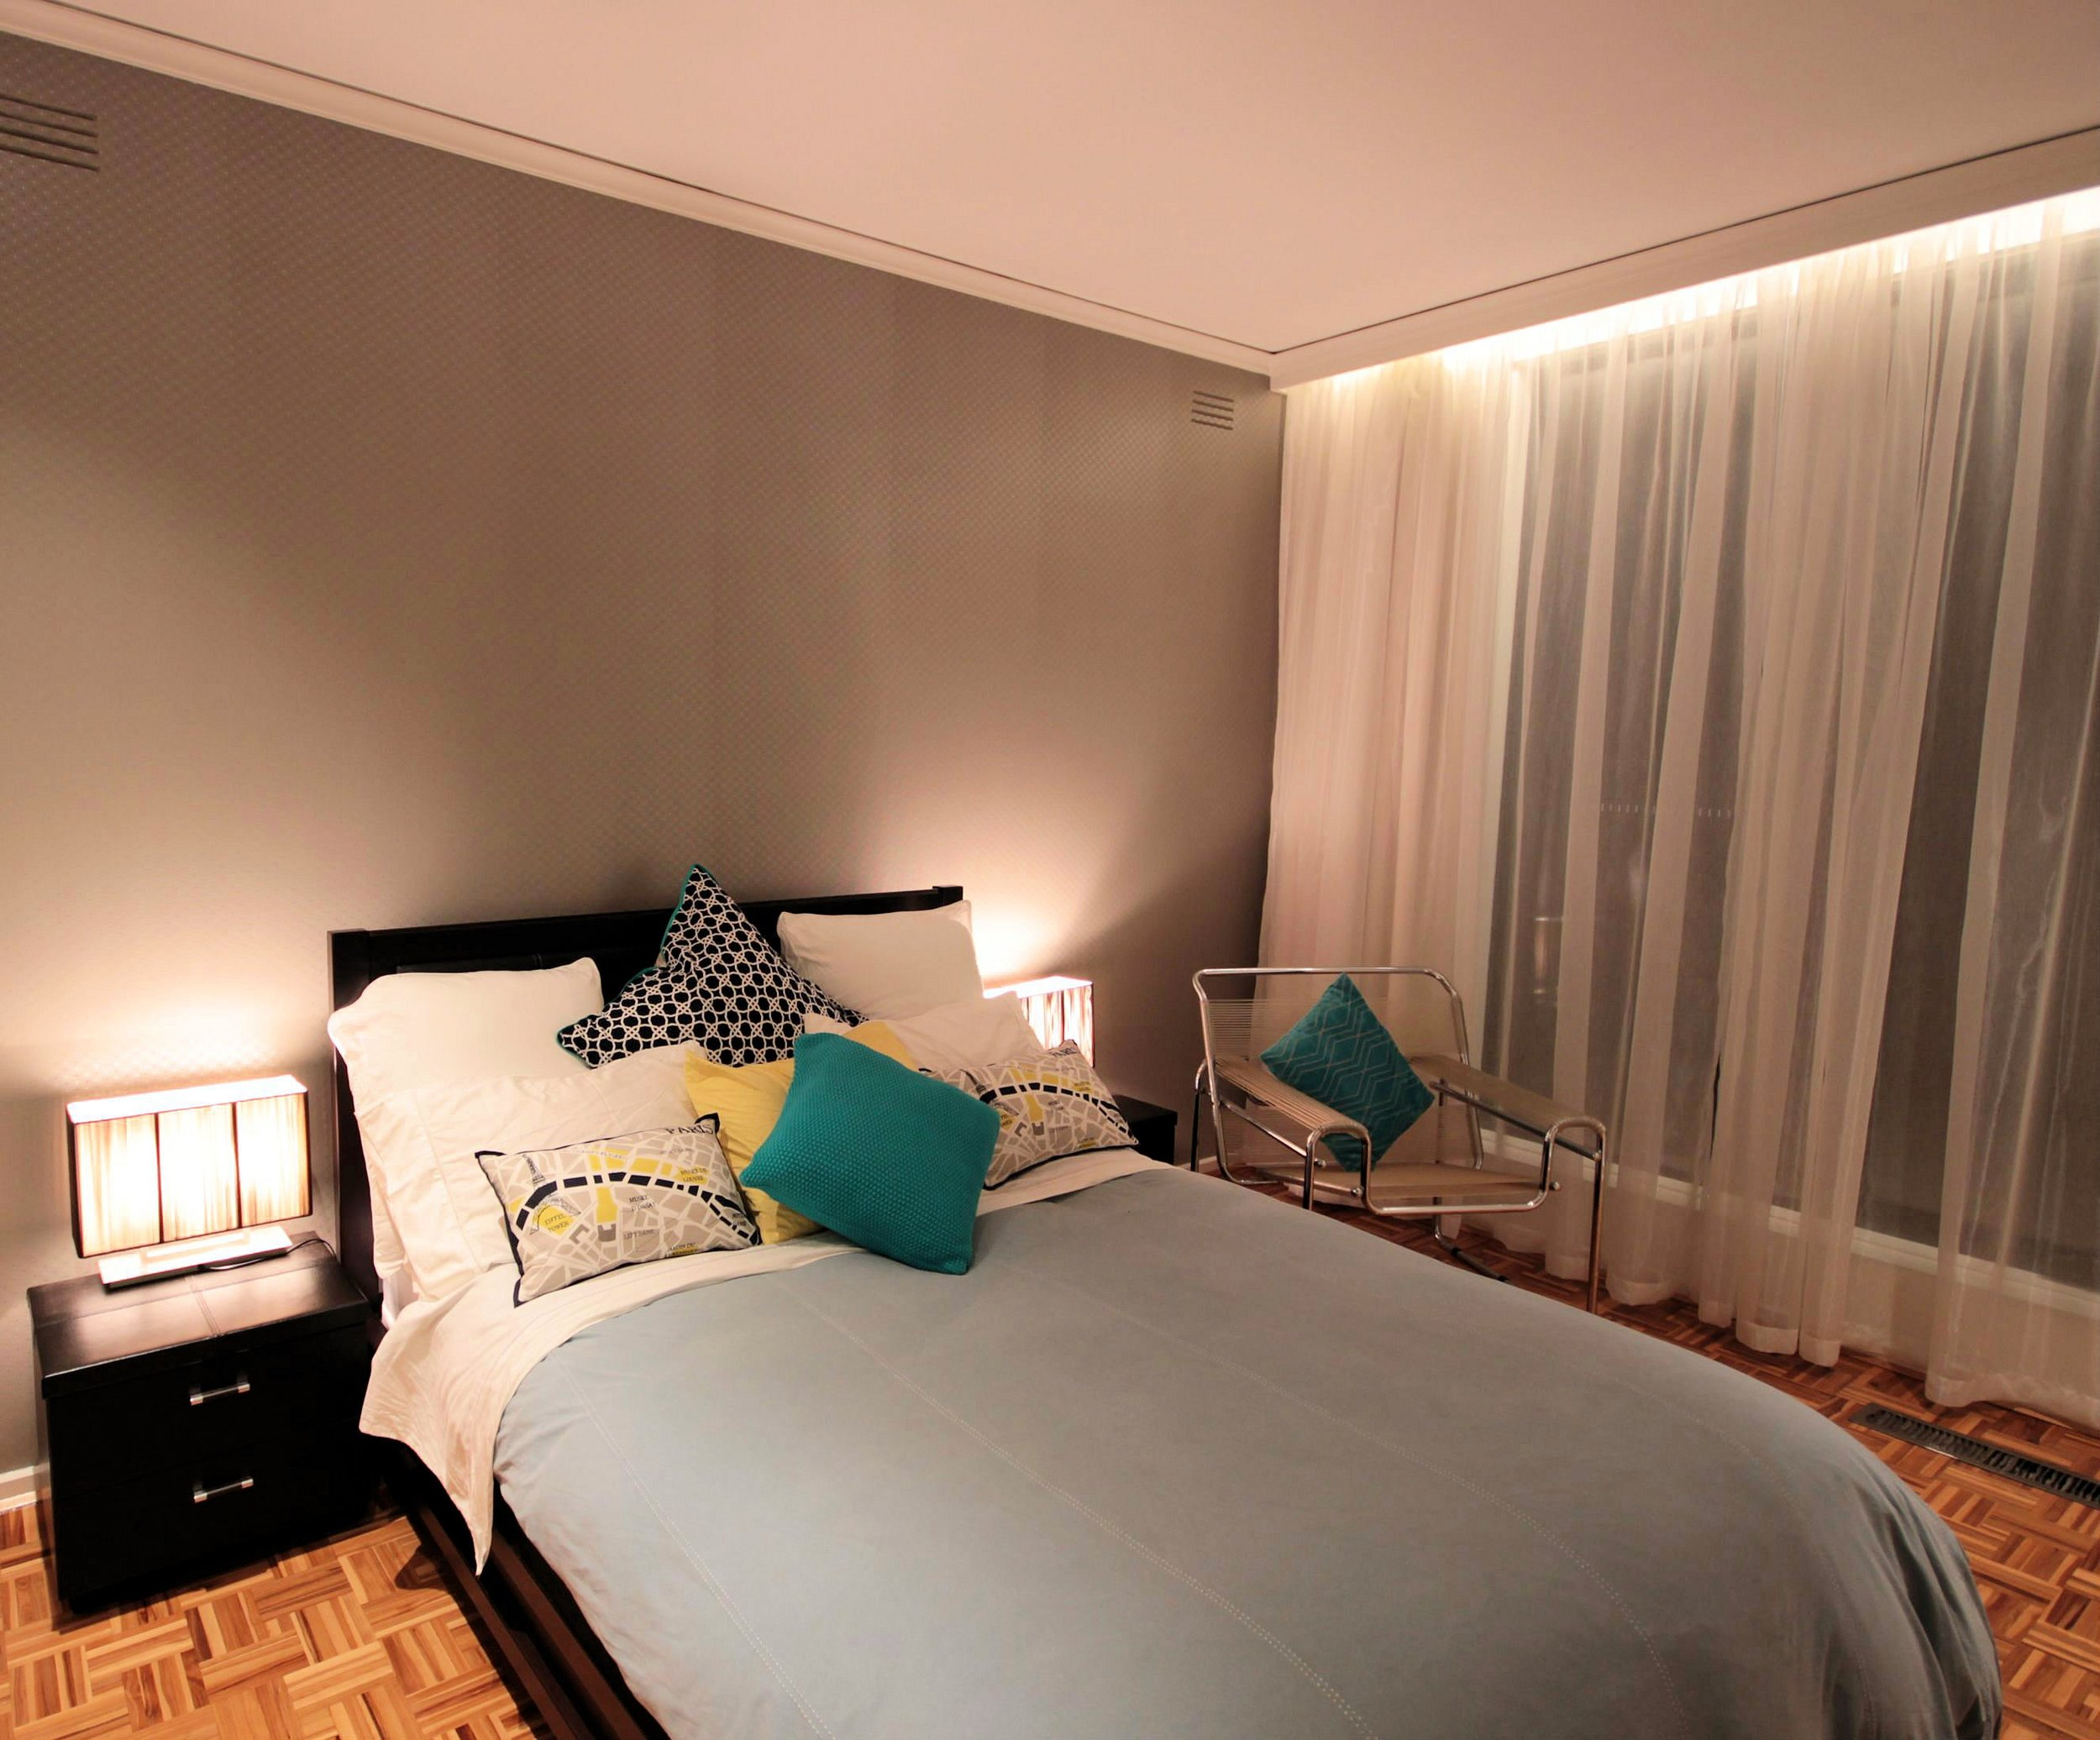 GuestBedLightingDesign_web.jpg